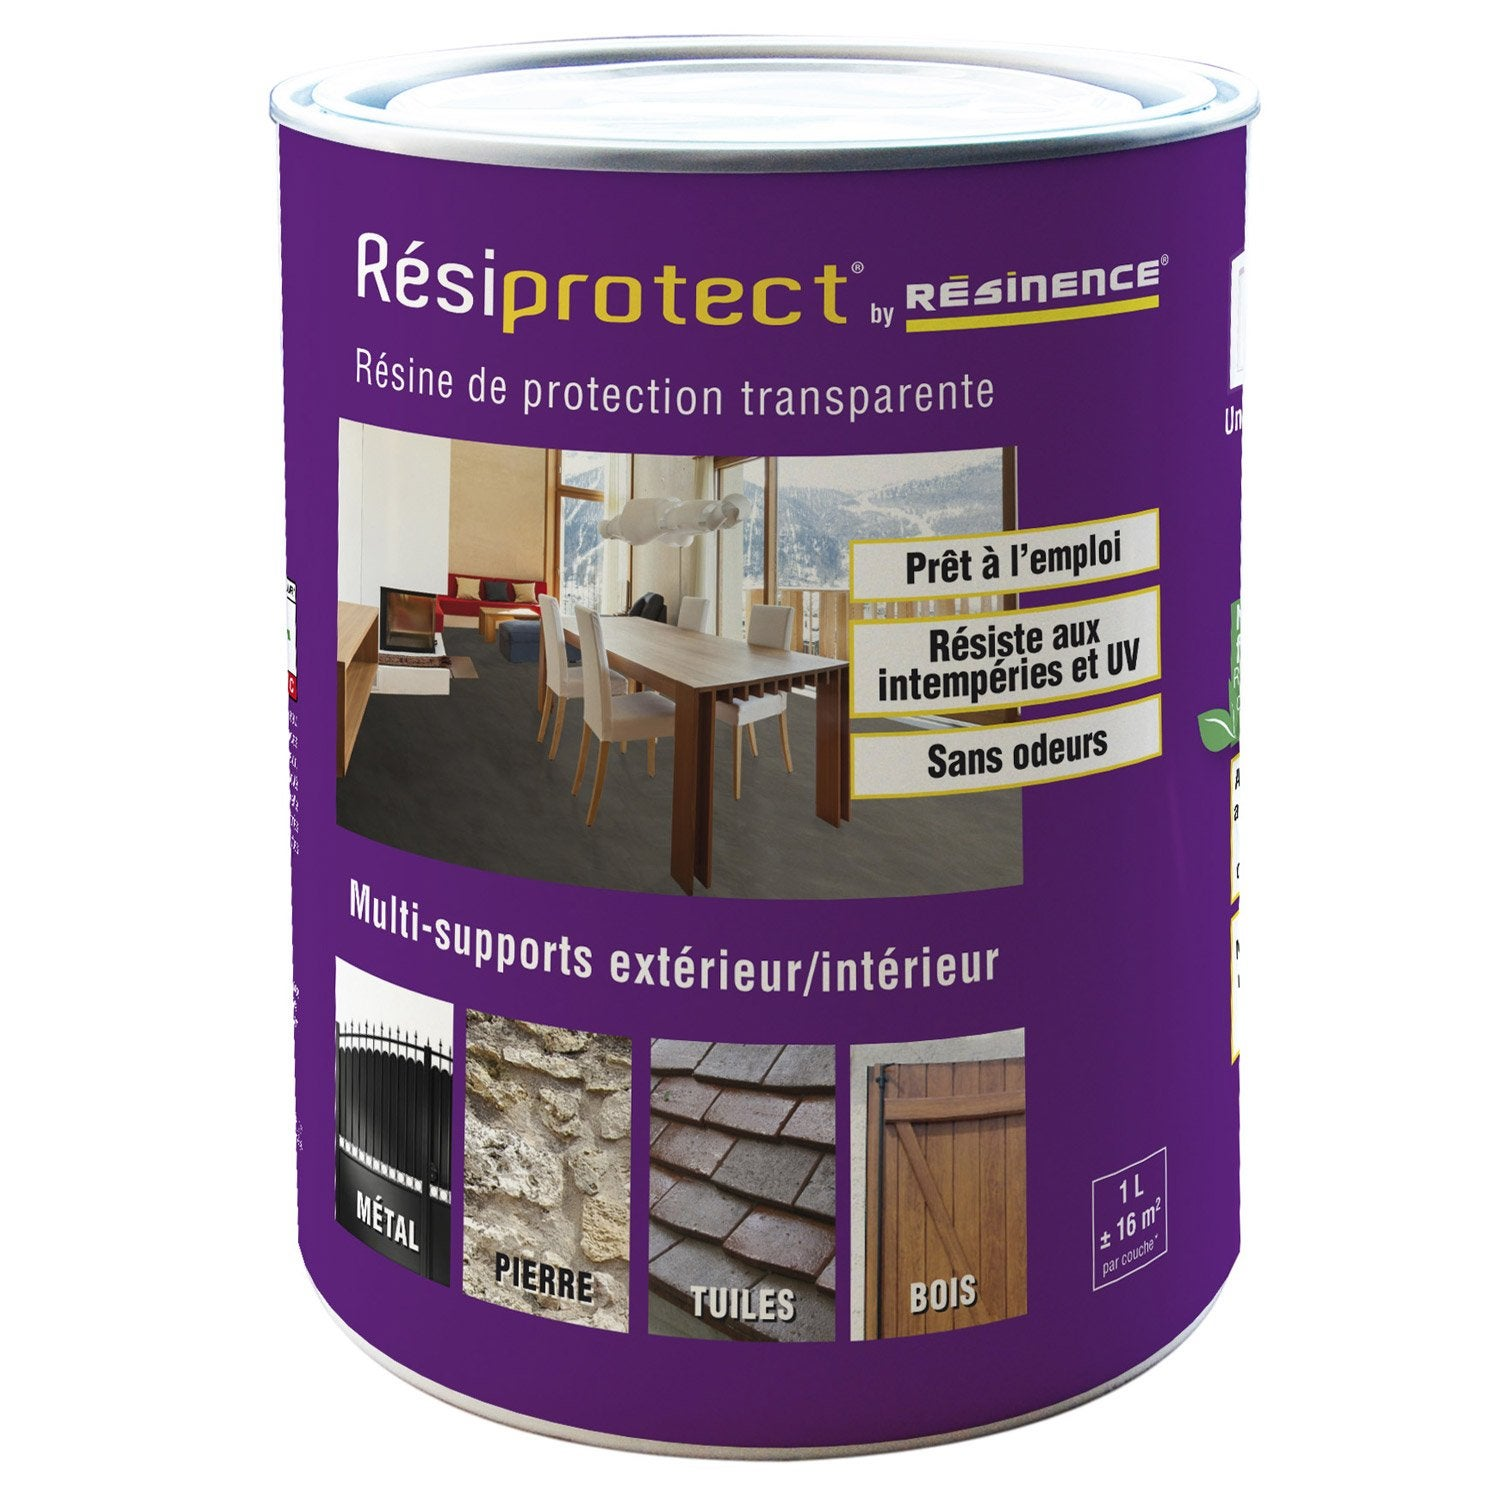 R sine tanch it r siprotect resinence transparent 1l leroy merlin - Resine de coulee transparente ...